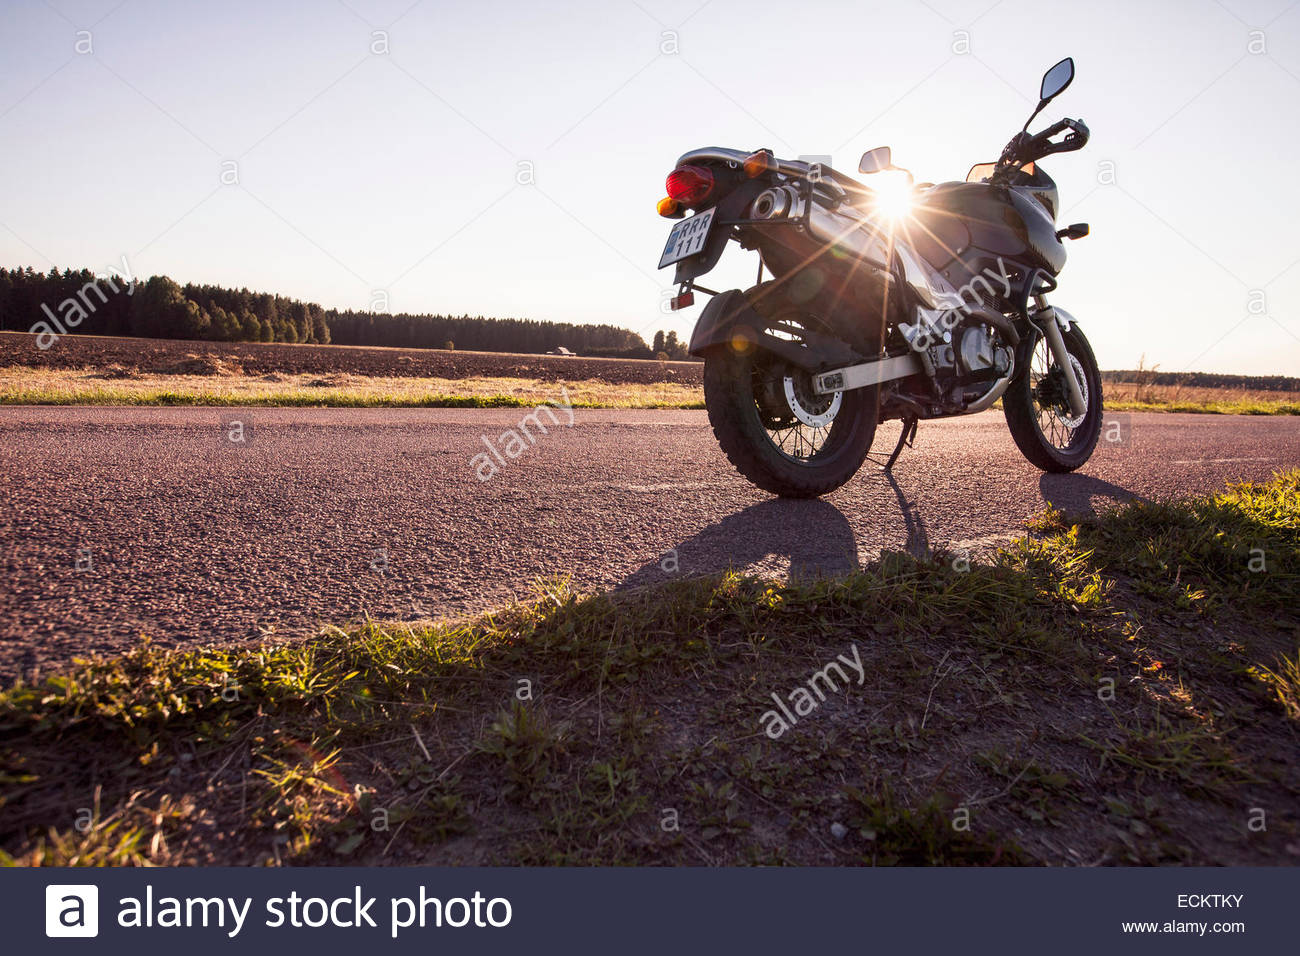 Motorcycle parked on country road - Stock Image